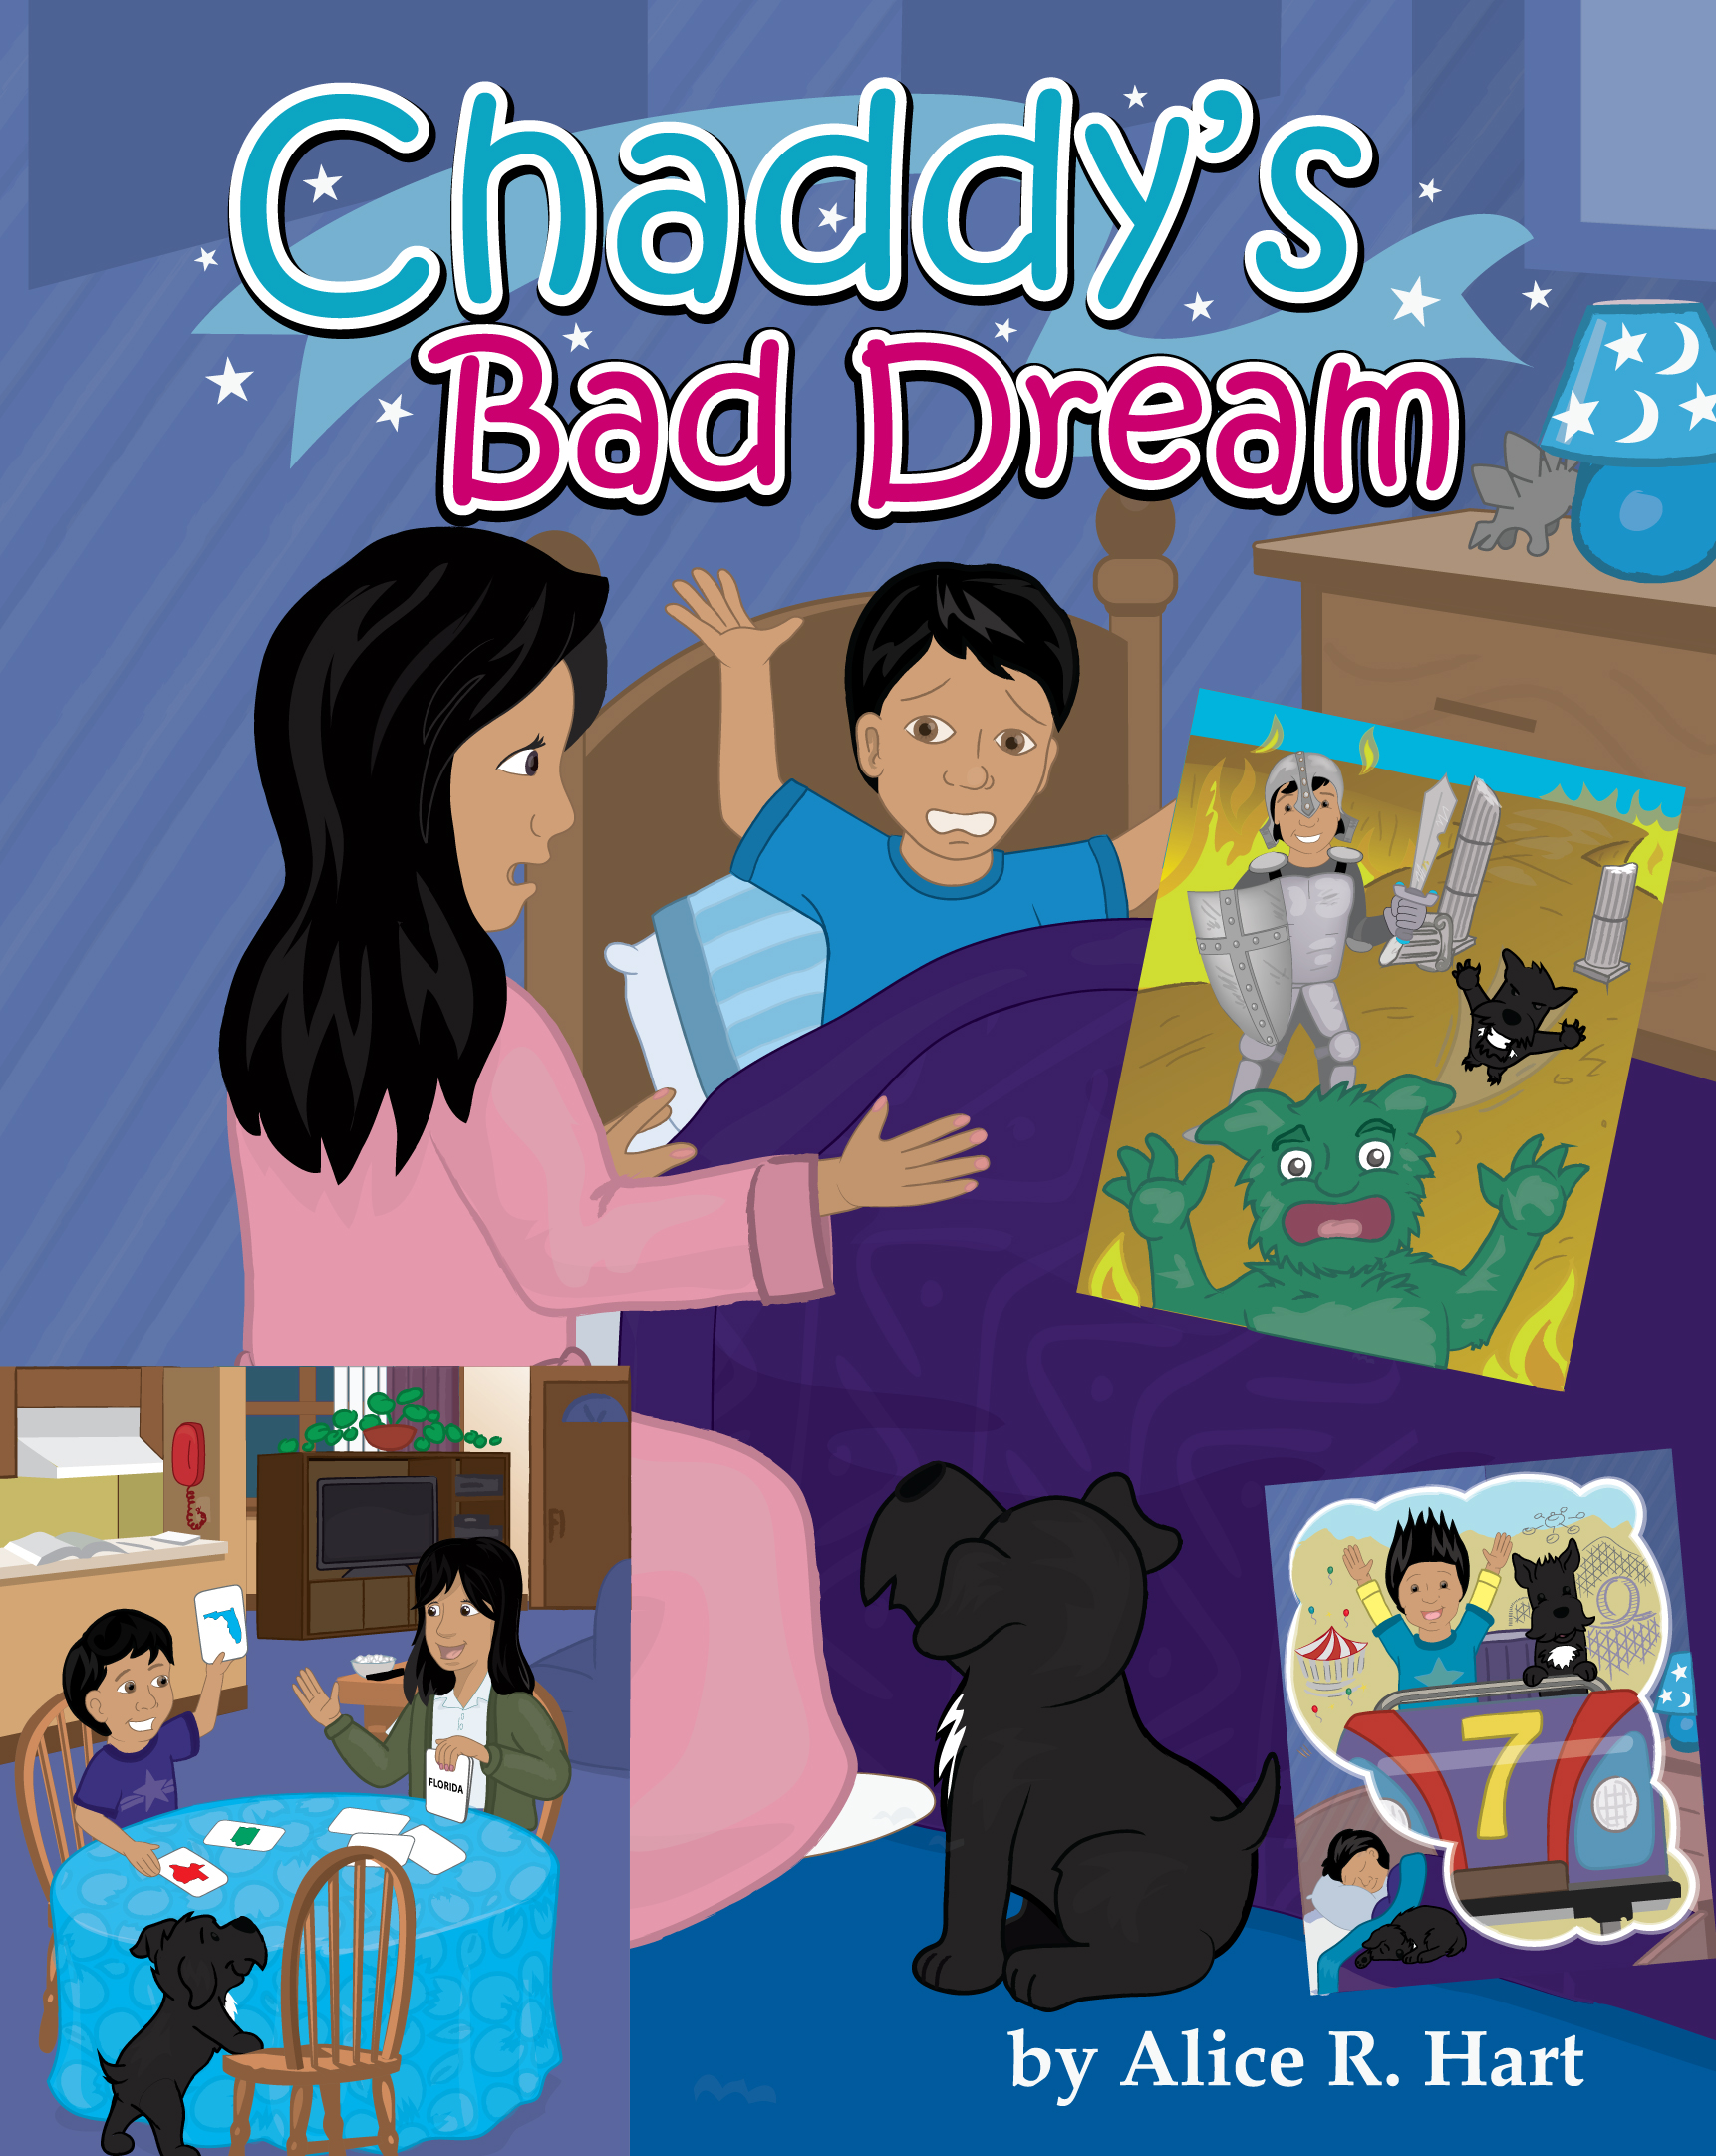 Chaddy Bad dream book cover